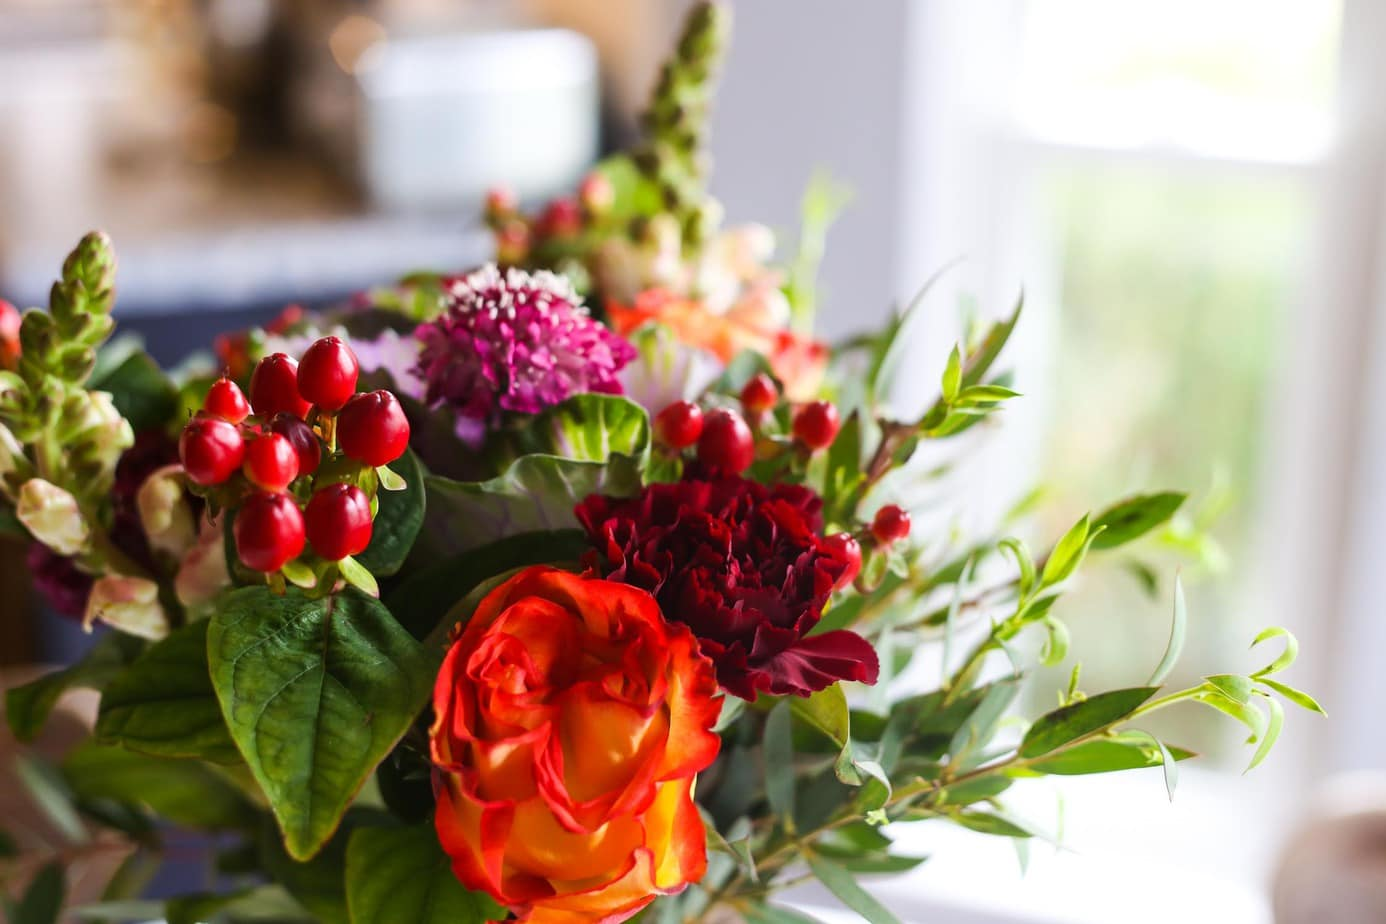 Flower arrangement tips back to basics love renovations tips for creating a simple and beautiful fall floral arrangement izmirmasajfo